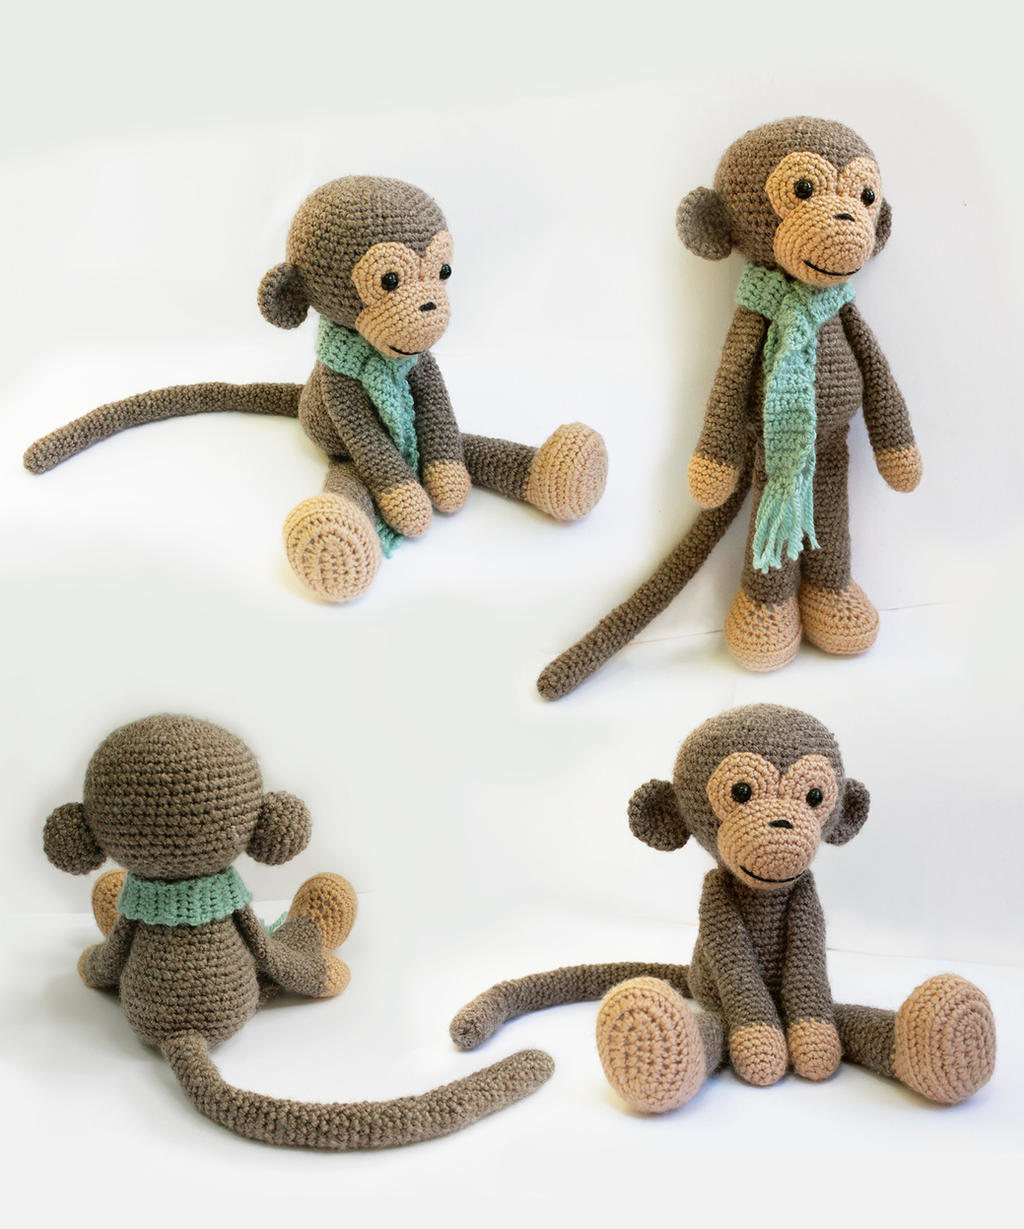 Amigurumi Free Pattern Crochet : Amigurumi Monkey Pattern by AnatTzach on DeviantArt